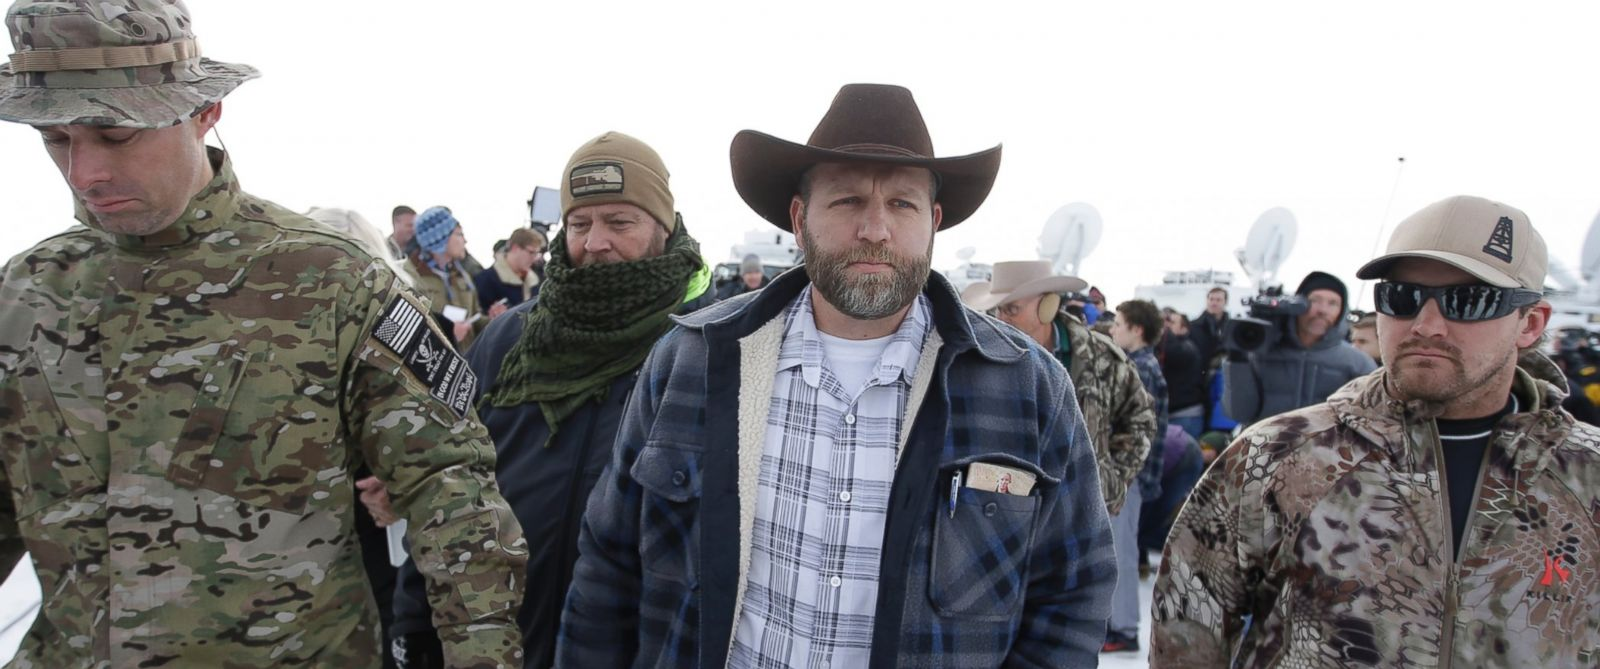 PHOTO: Ammon Bundy, center, walks off after speaking with reporters during a news conference at Malheur National Wildlife Refuge headquarters, Jan. 4, 2016, near Burns, Ore.